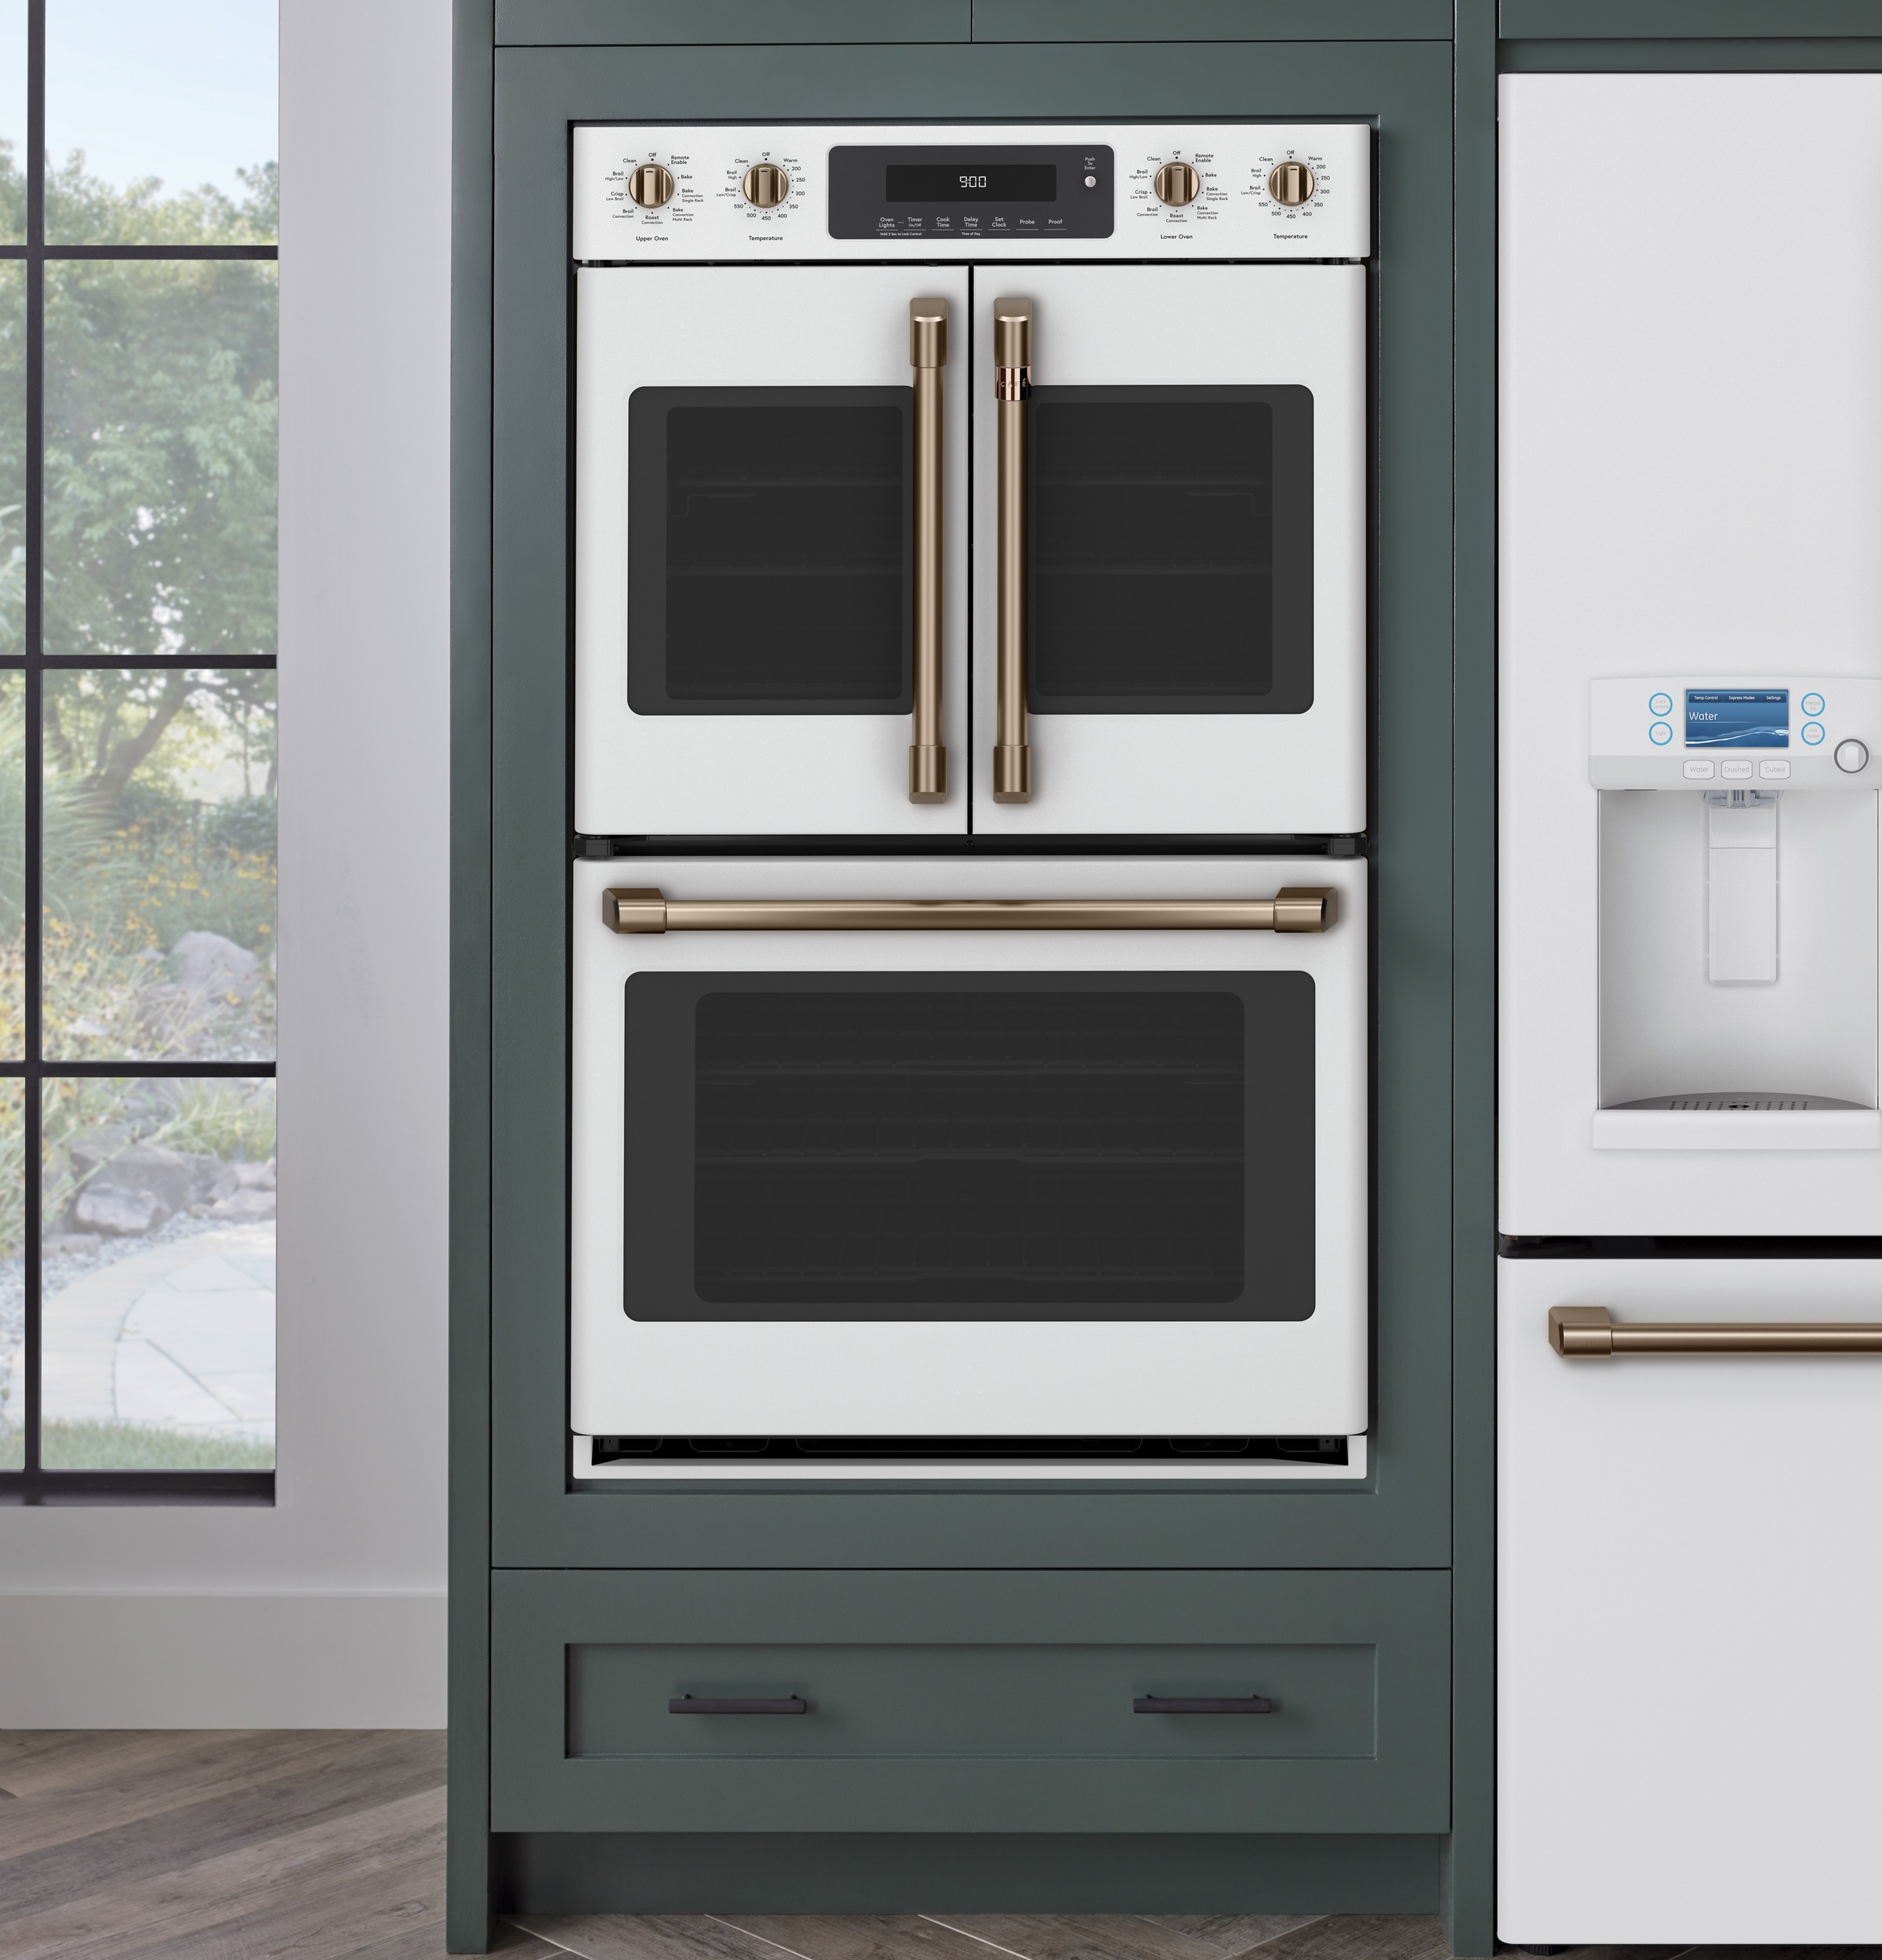 """Café™ 30"""" Smart French-Door, Double Wall Oven with Convection 